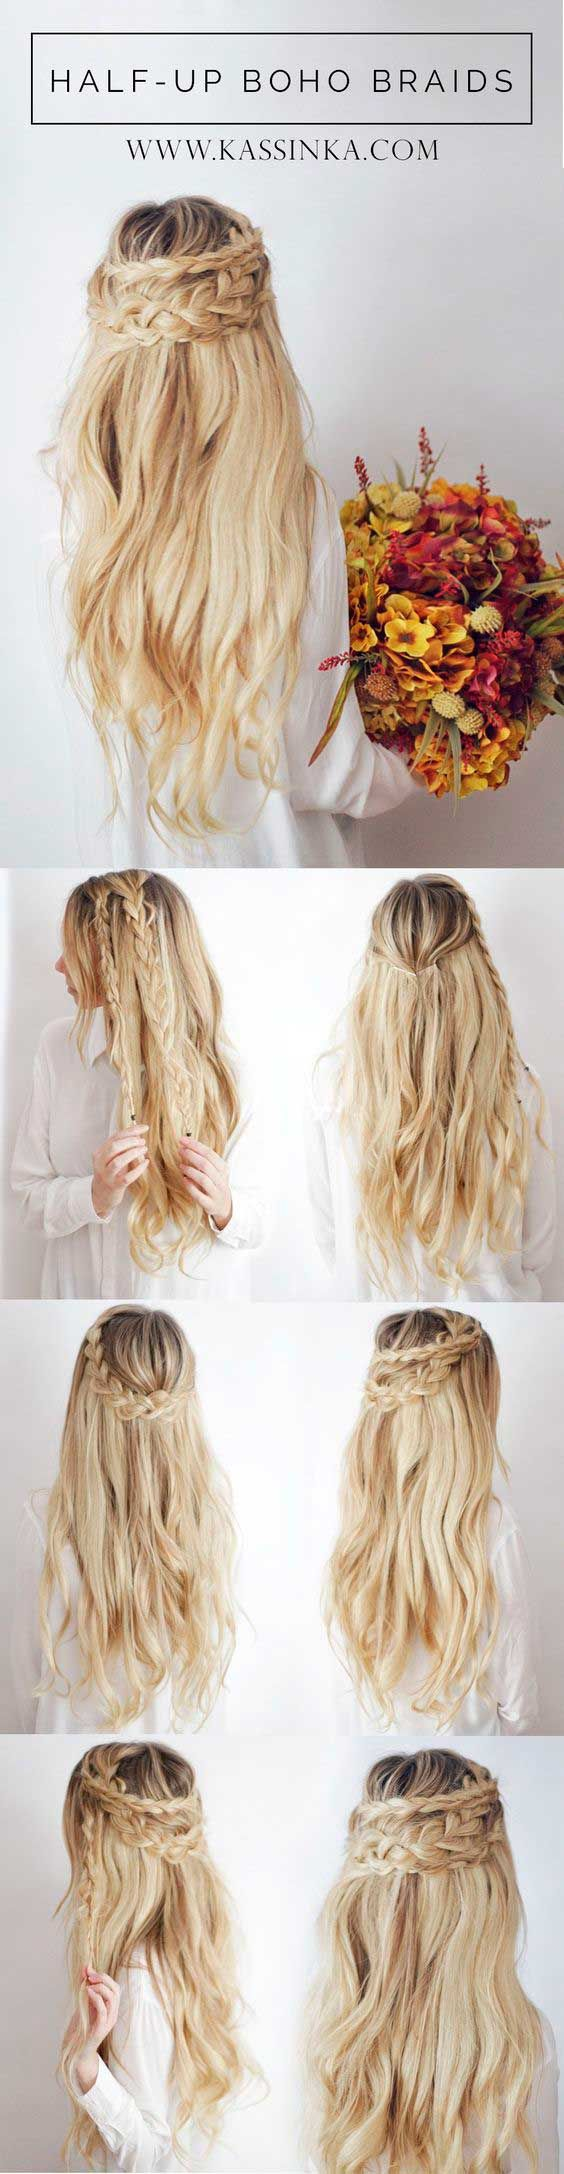 halfuphalfdown hairstyle tutorials perfect for prom hair